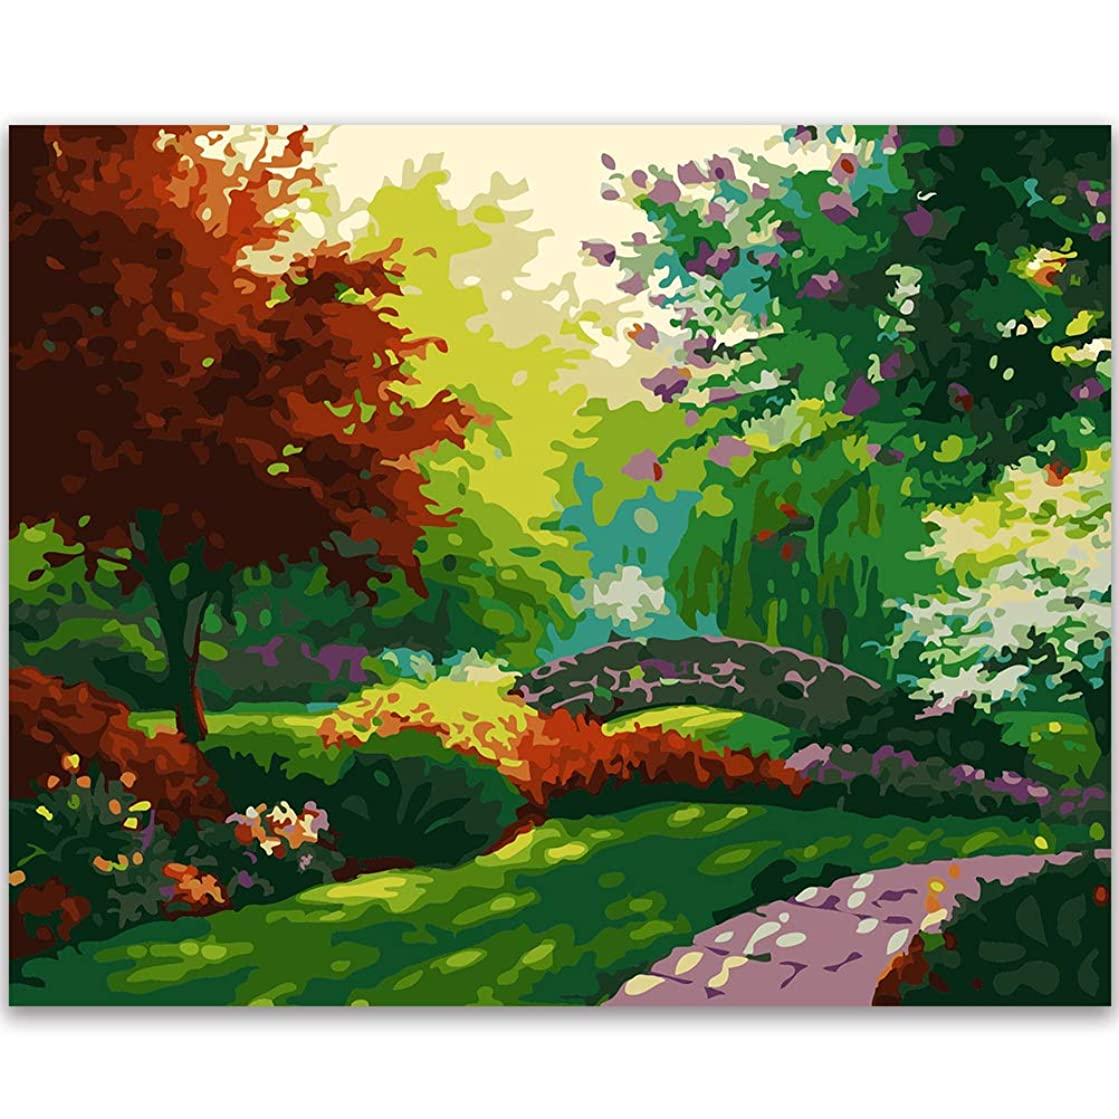 Fengtuo DIY Oil Painting Paint by Number Kit Canvas Painting Hand Colouring Decorative Picture for Jungle Design 16